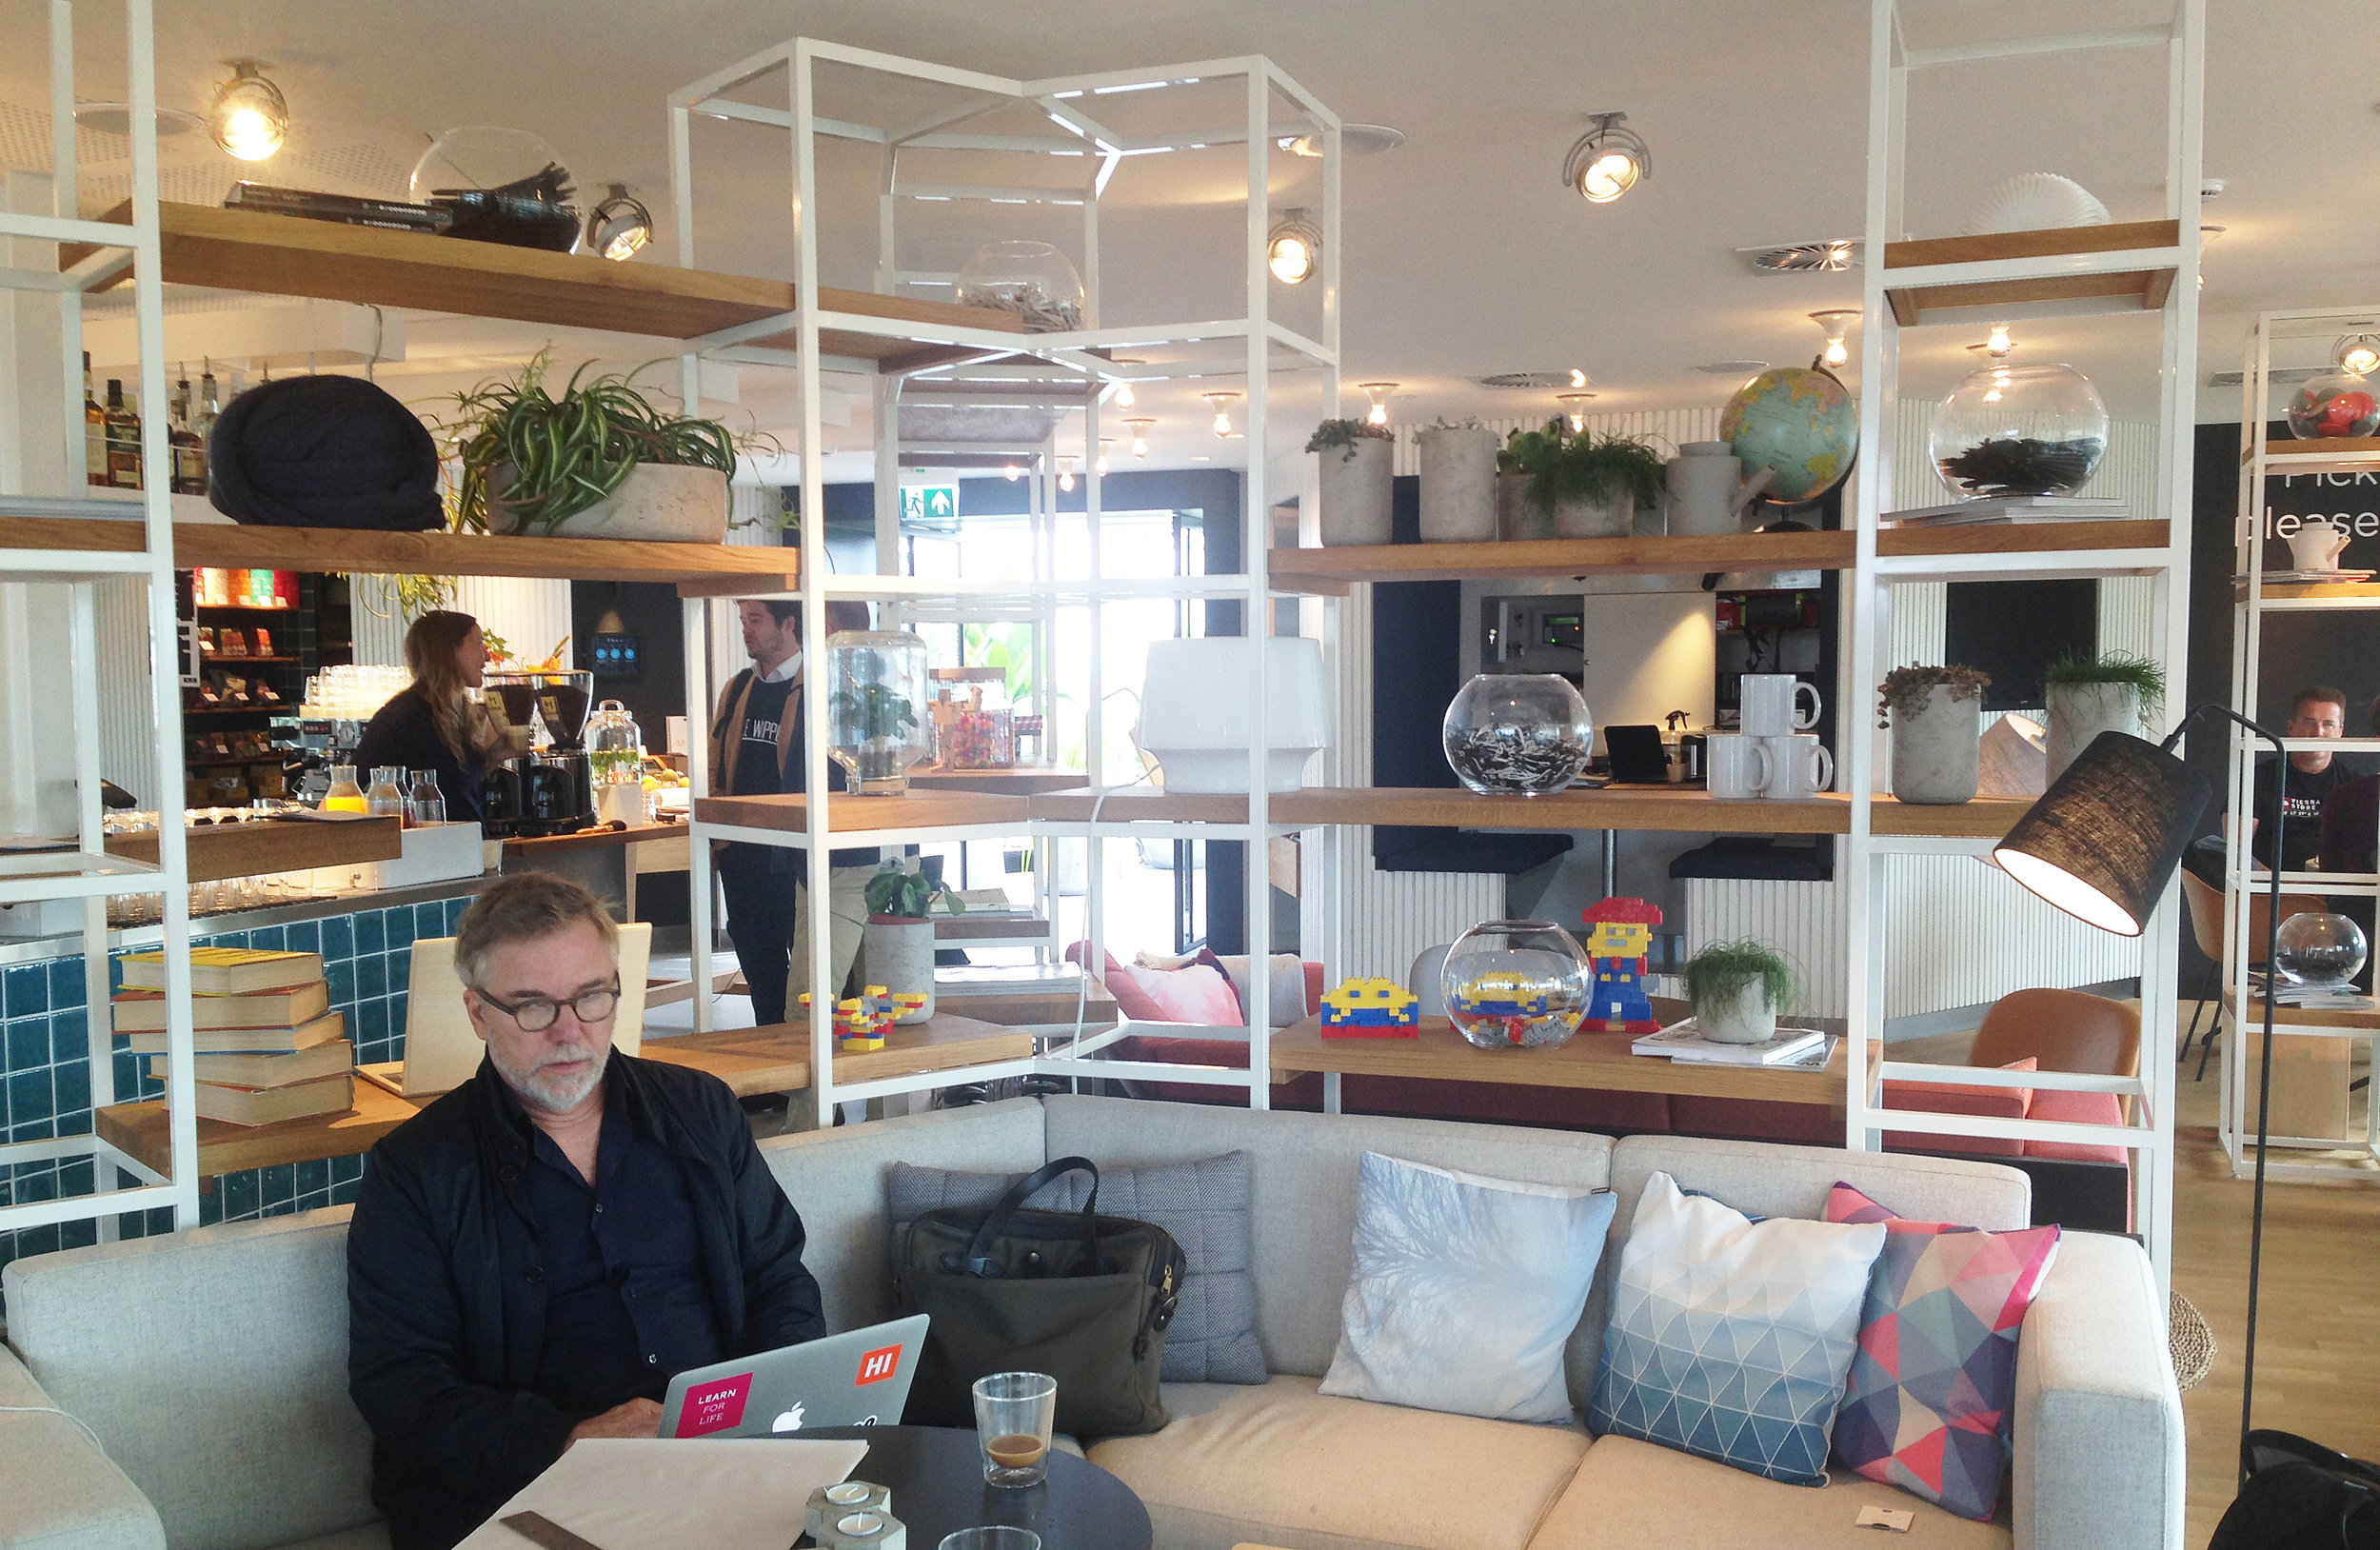 We stayed at ZOKU – a new way of combining working and living. It was awesome.